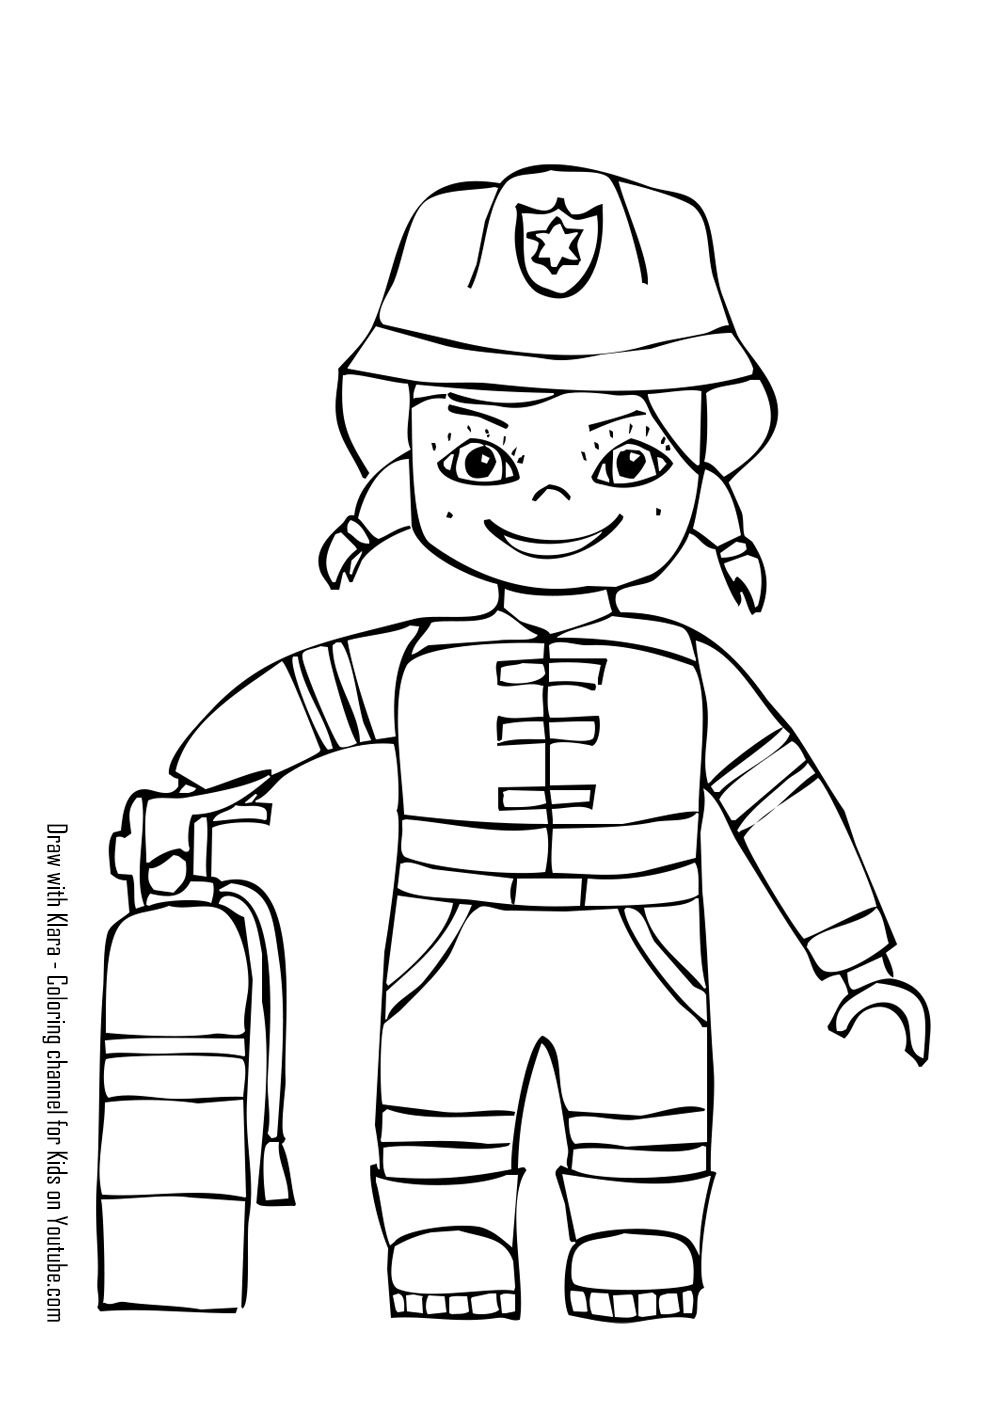 Firewoman Coloring Page Coloring For Kids Easy Drawings Drawing Tutorials For Kids